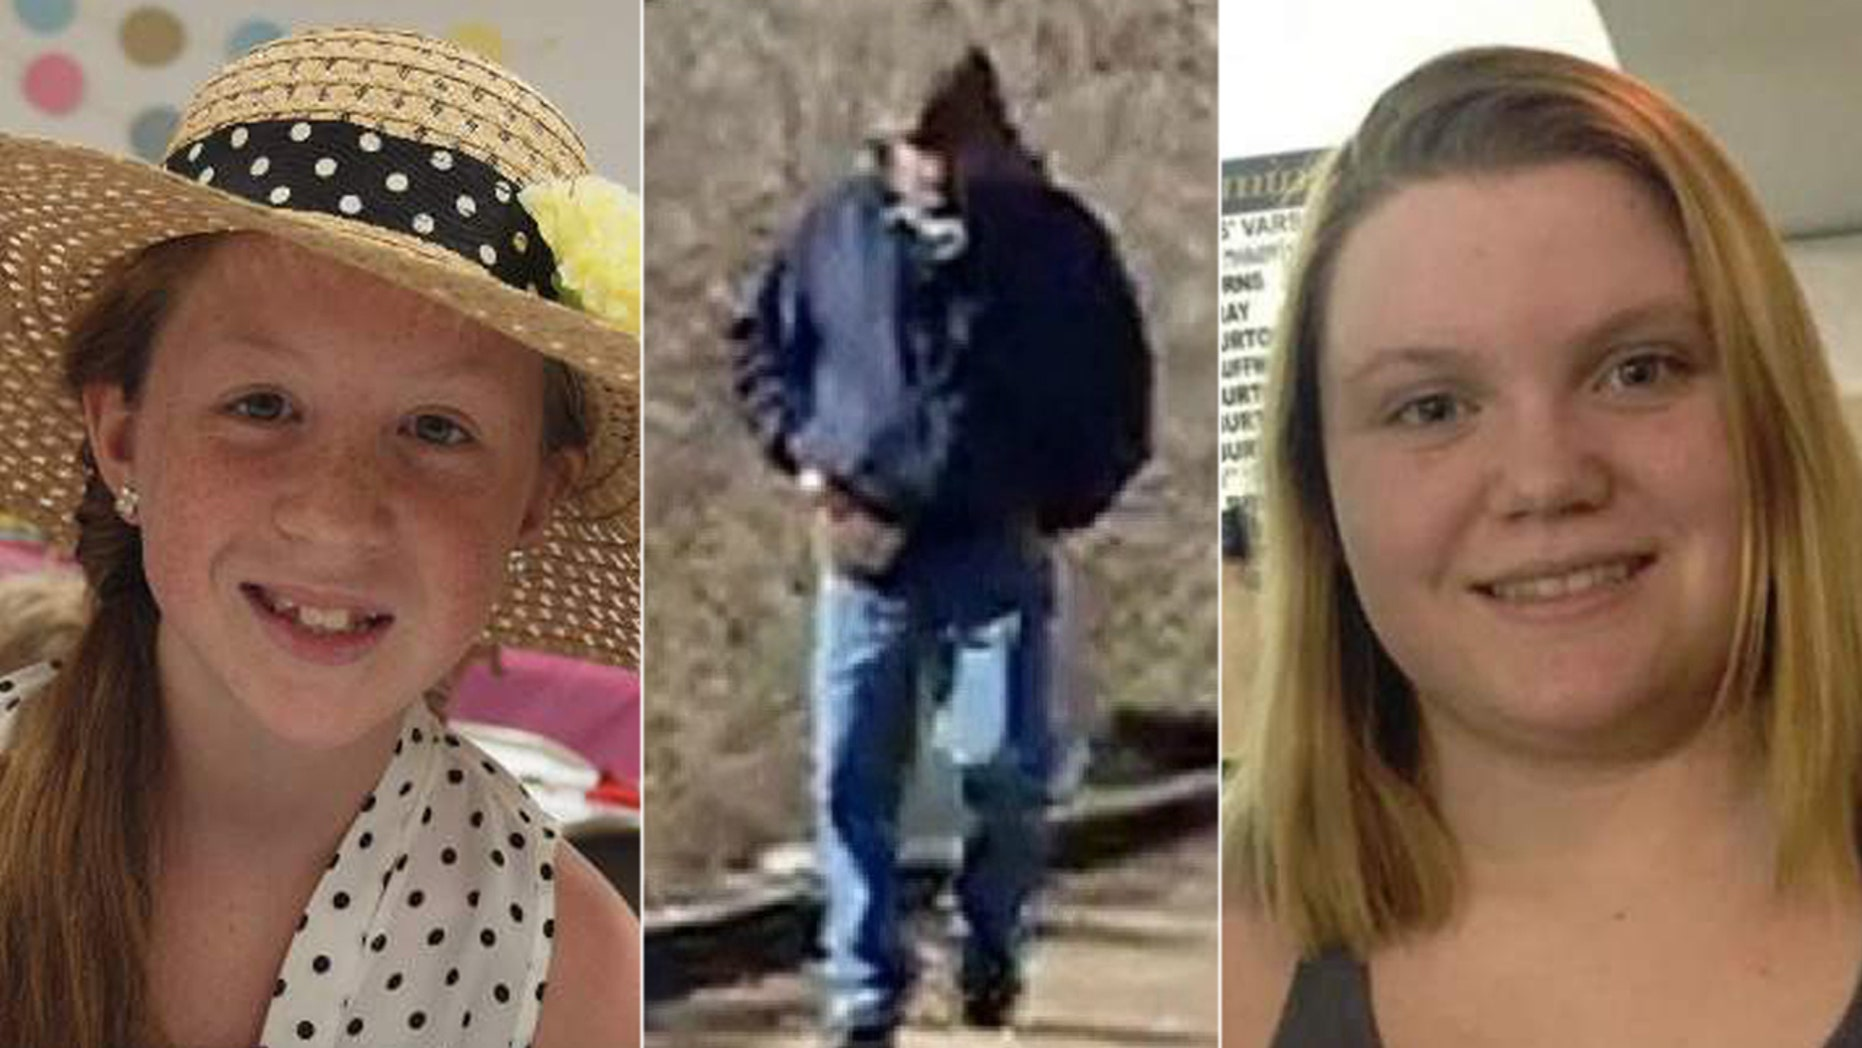 On Feb. 13, 2017, Abigail Williams, 13, and Liberty German, 14, disappeared after being dropped off at the Delphi Historic Trails. The image of the unidentified man (center) was taken from one of the girls' cellphones on the same day they vanished.